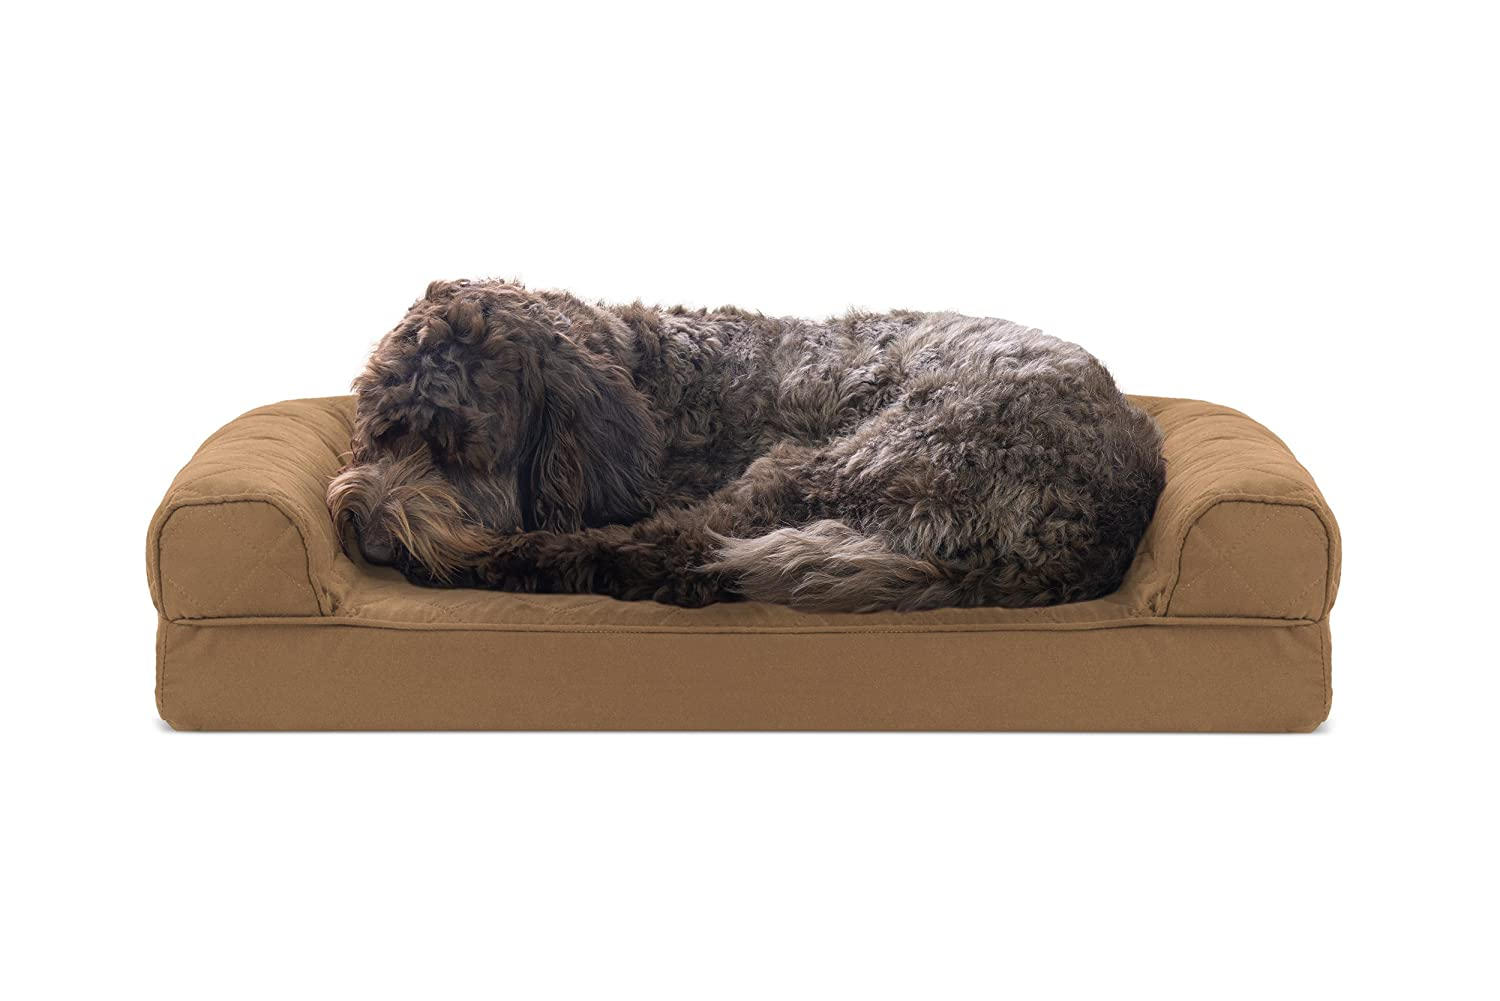 FurHaven Pet Dog Bed   Cooling Gel Memory Foam Orthopedic Quilted Sofa-Style Couch Pet Bed for Dogs & Cats, Toasted Brown, Medium